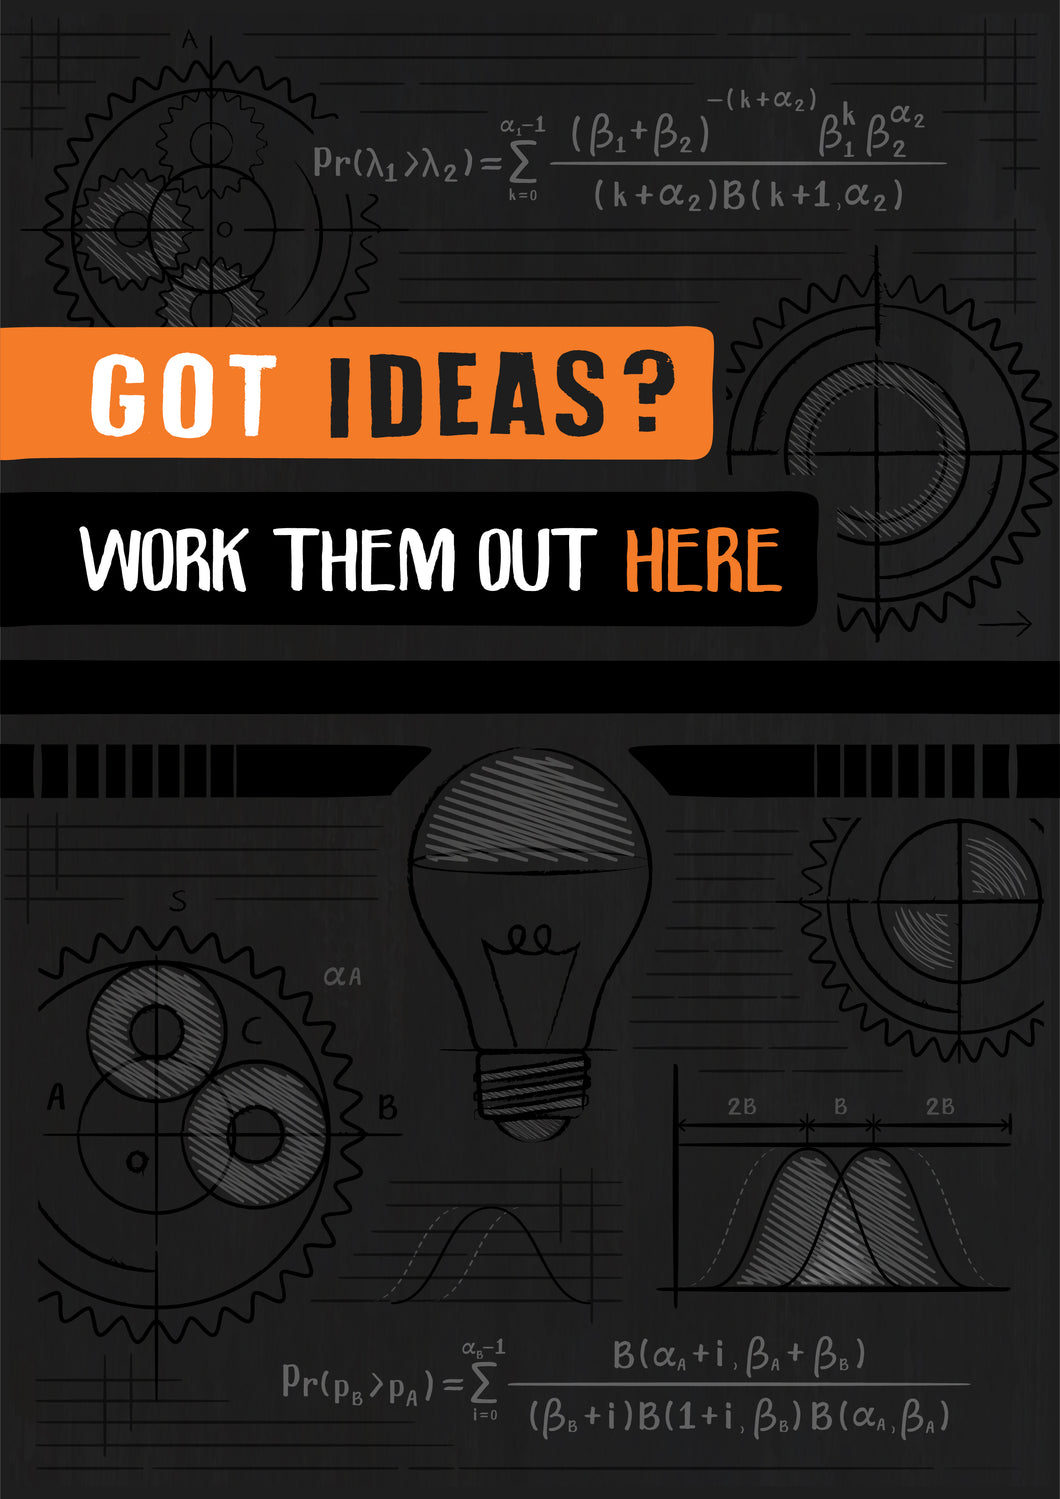 Got Ideas? Work Them Out Here (It's a workbook)